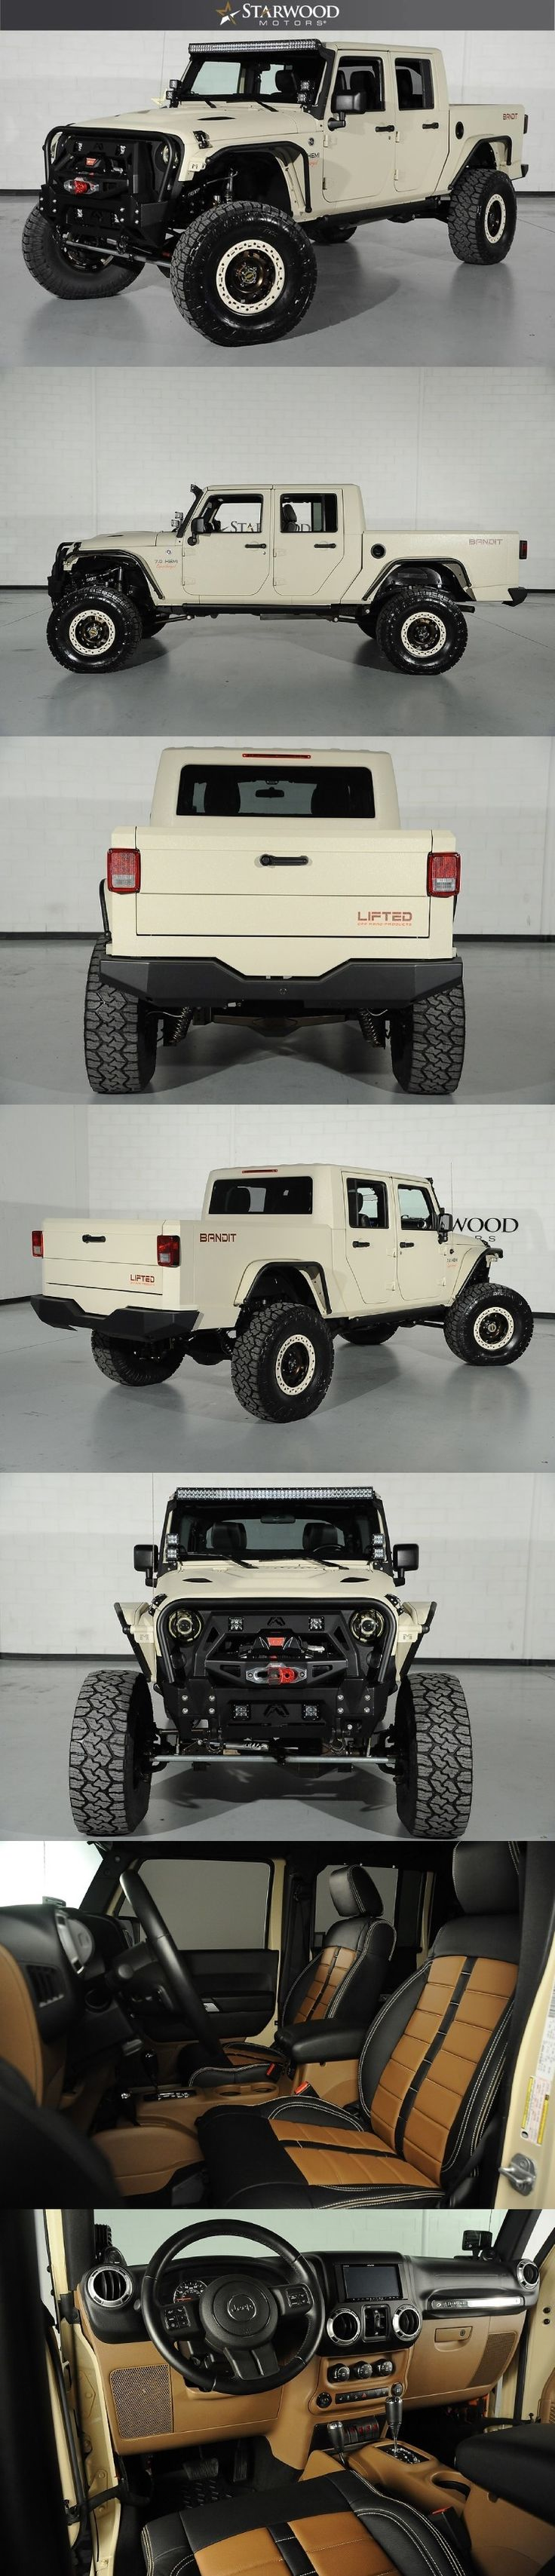 Starwood Motors Bandit Jeep.... if only.